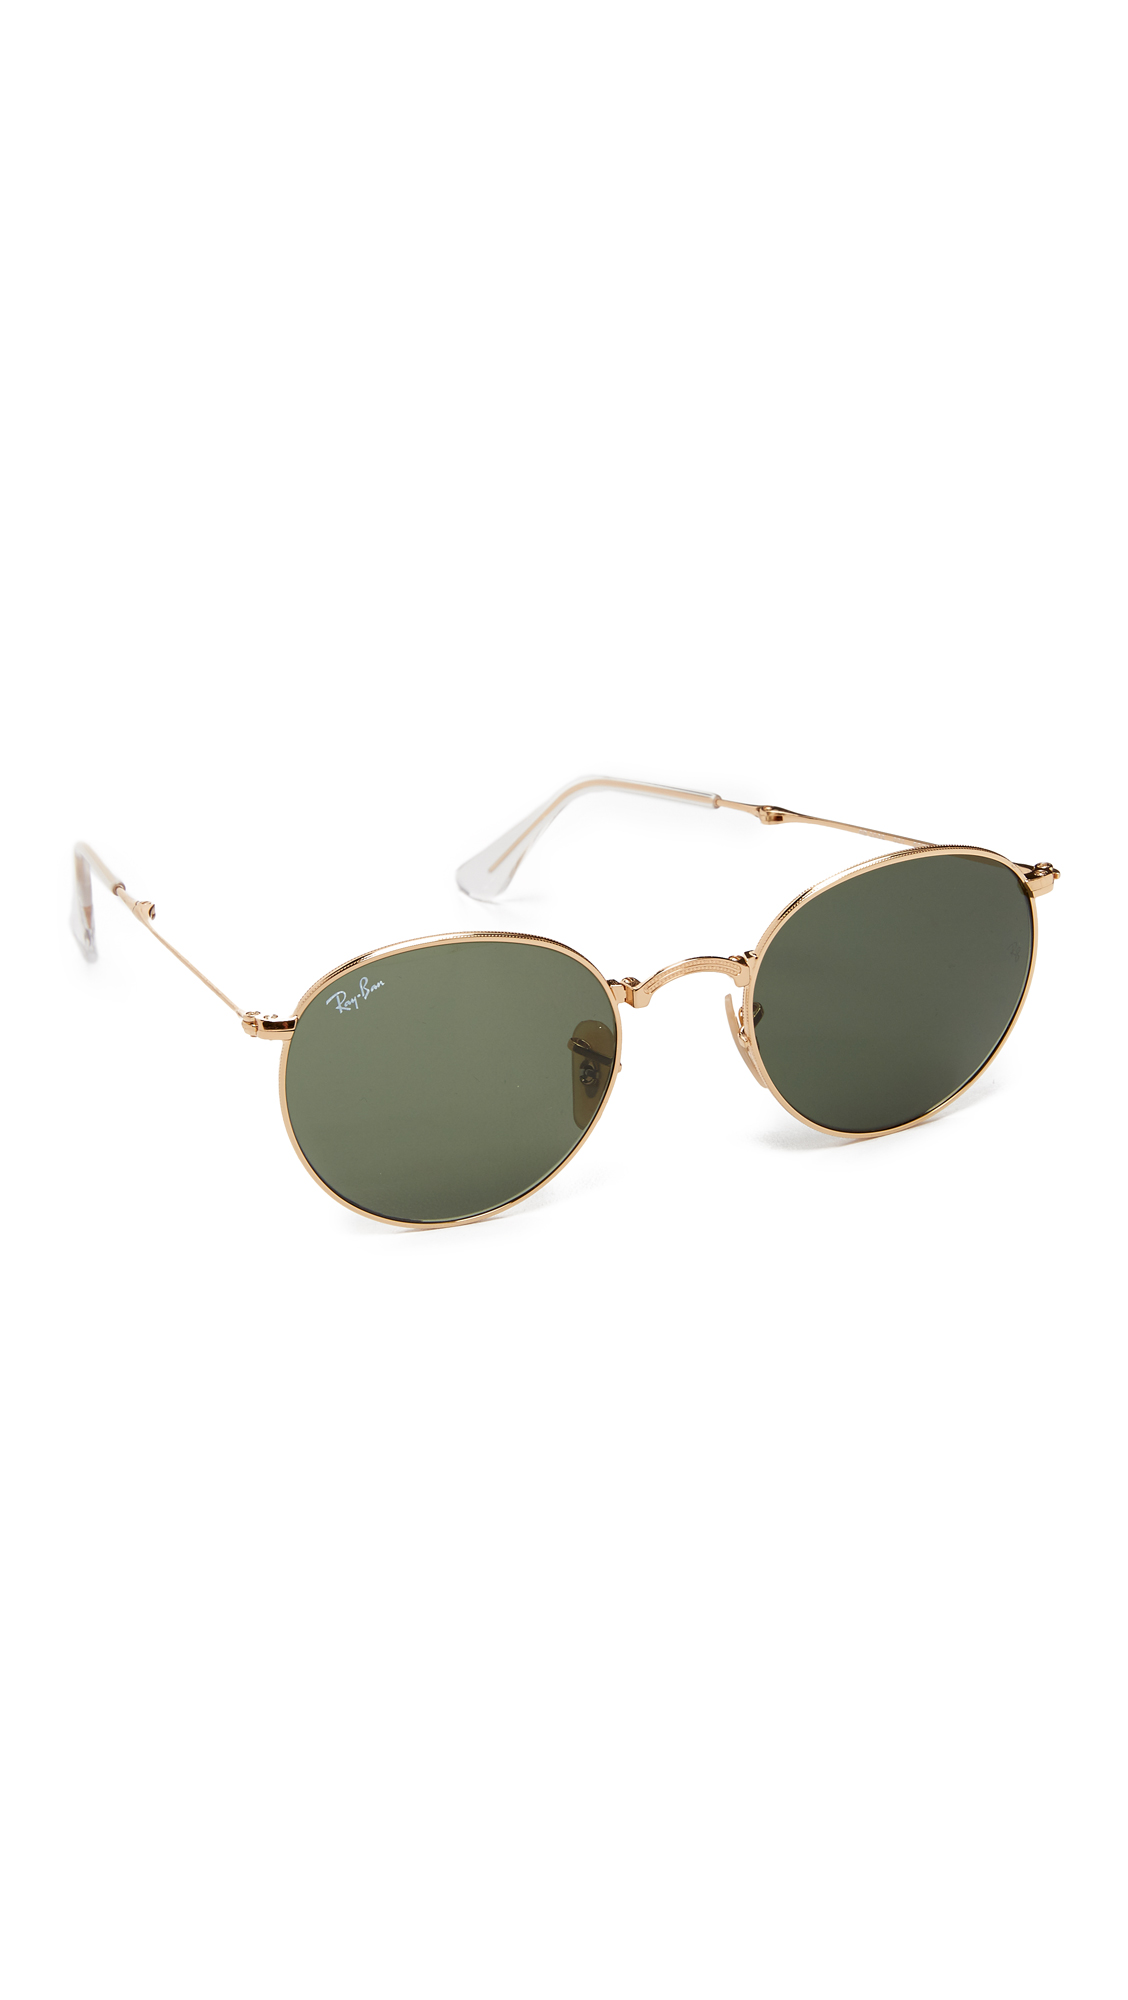 Ray-Ban Icons Round Sunglasses   SHOPBOP f57ed618ea14